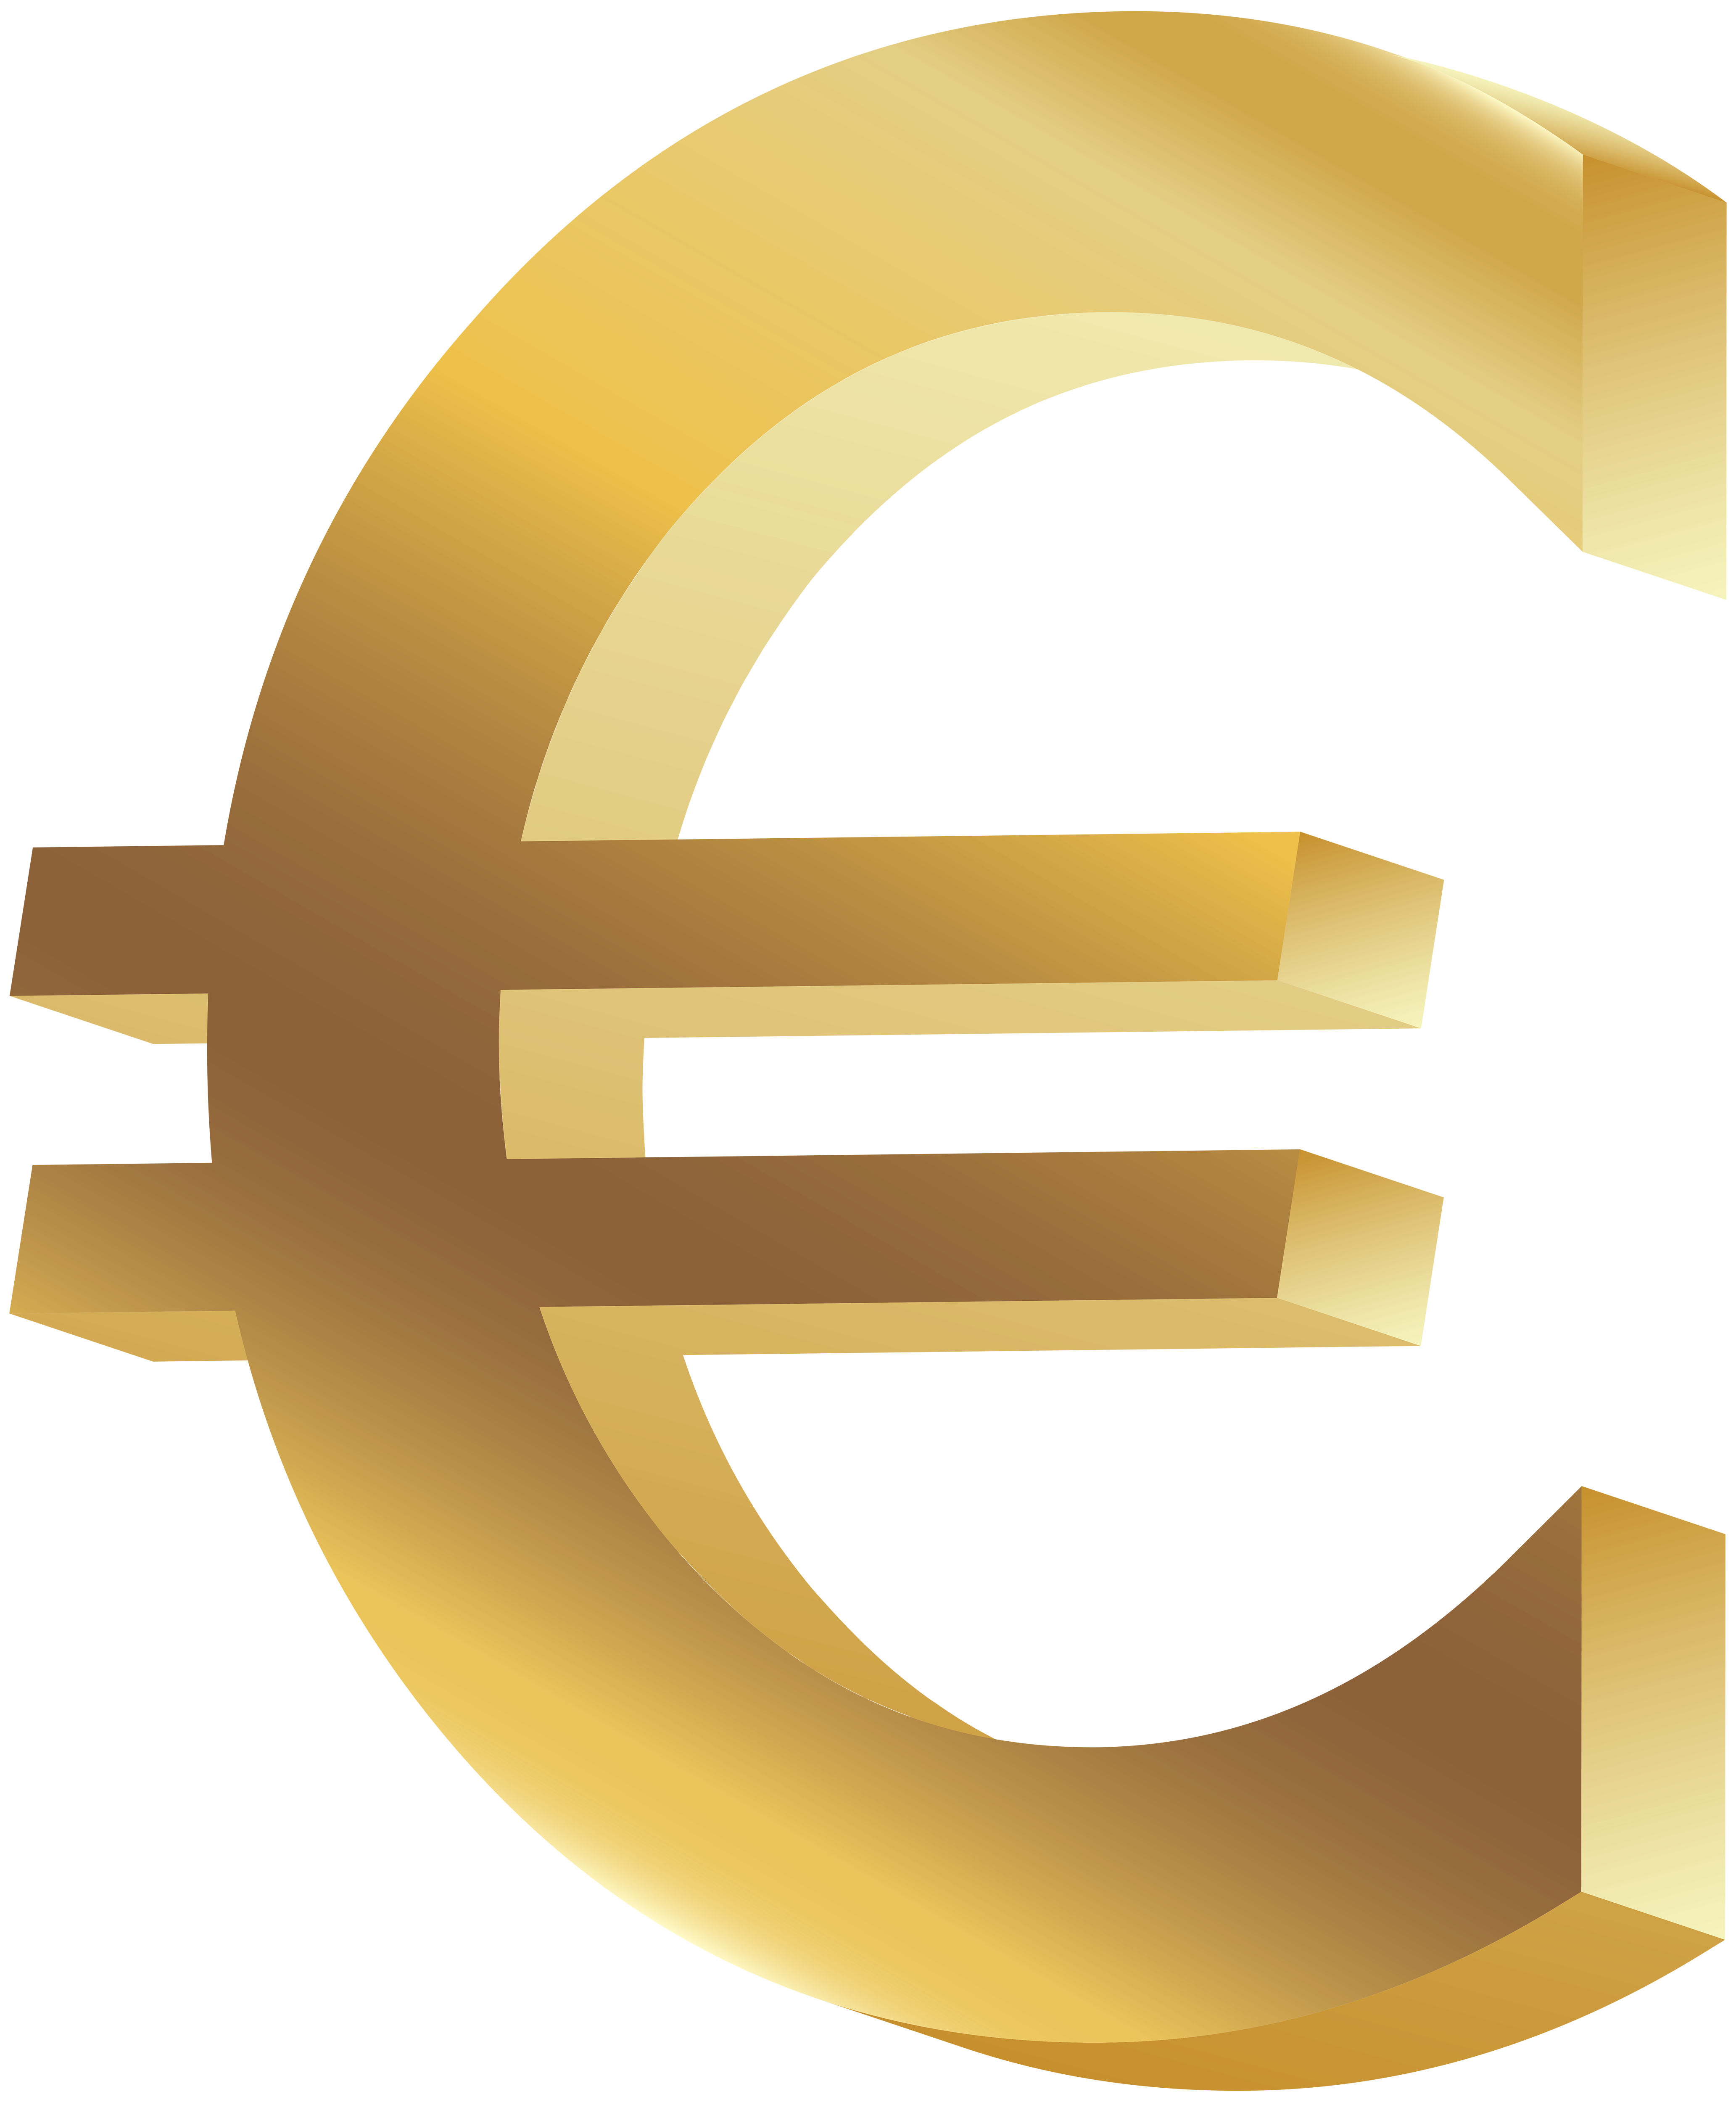 Clipart earth money. Euro symbol png clip